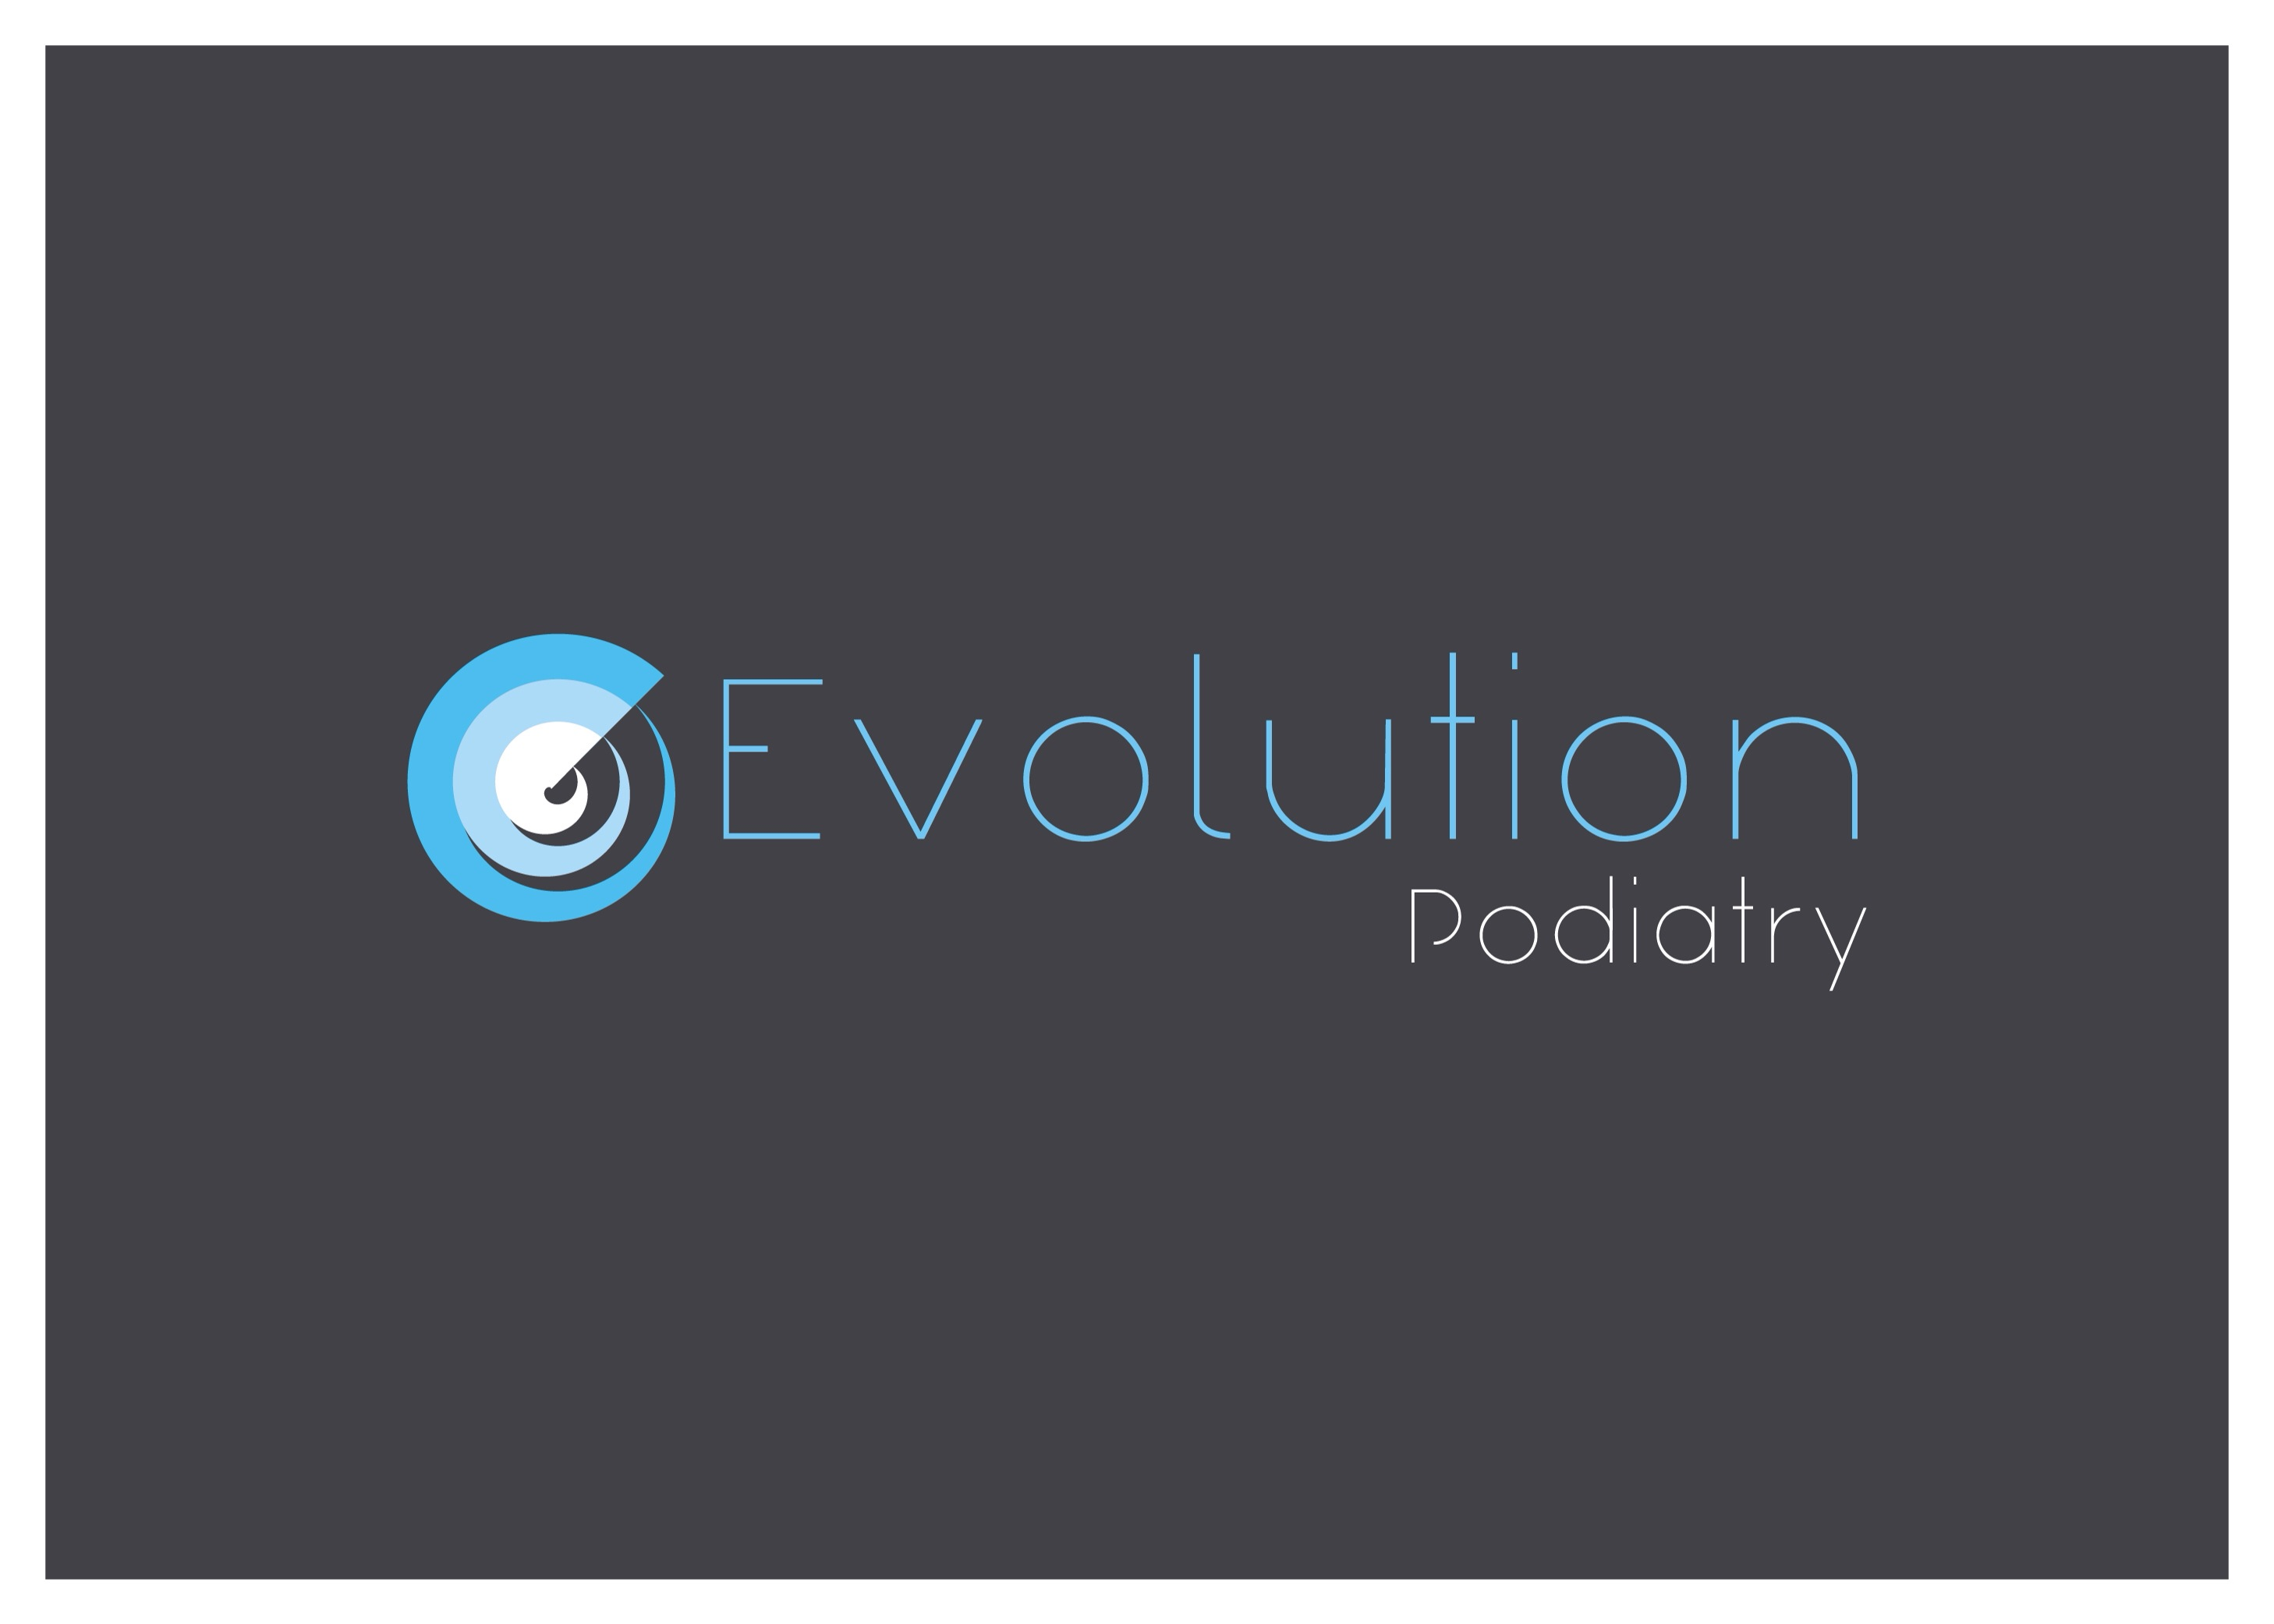 Evolution Podiatry